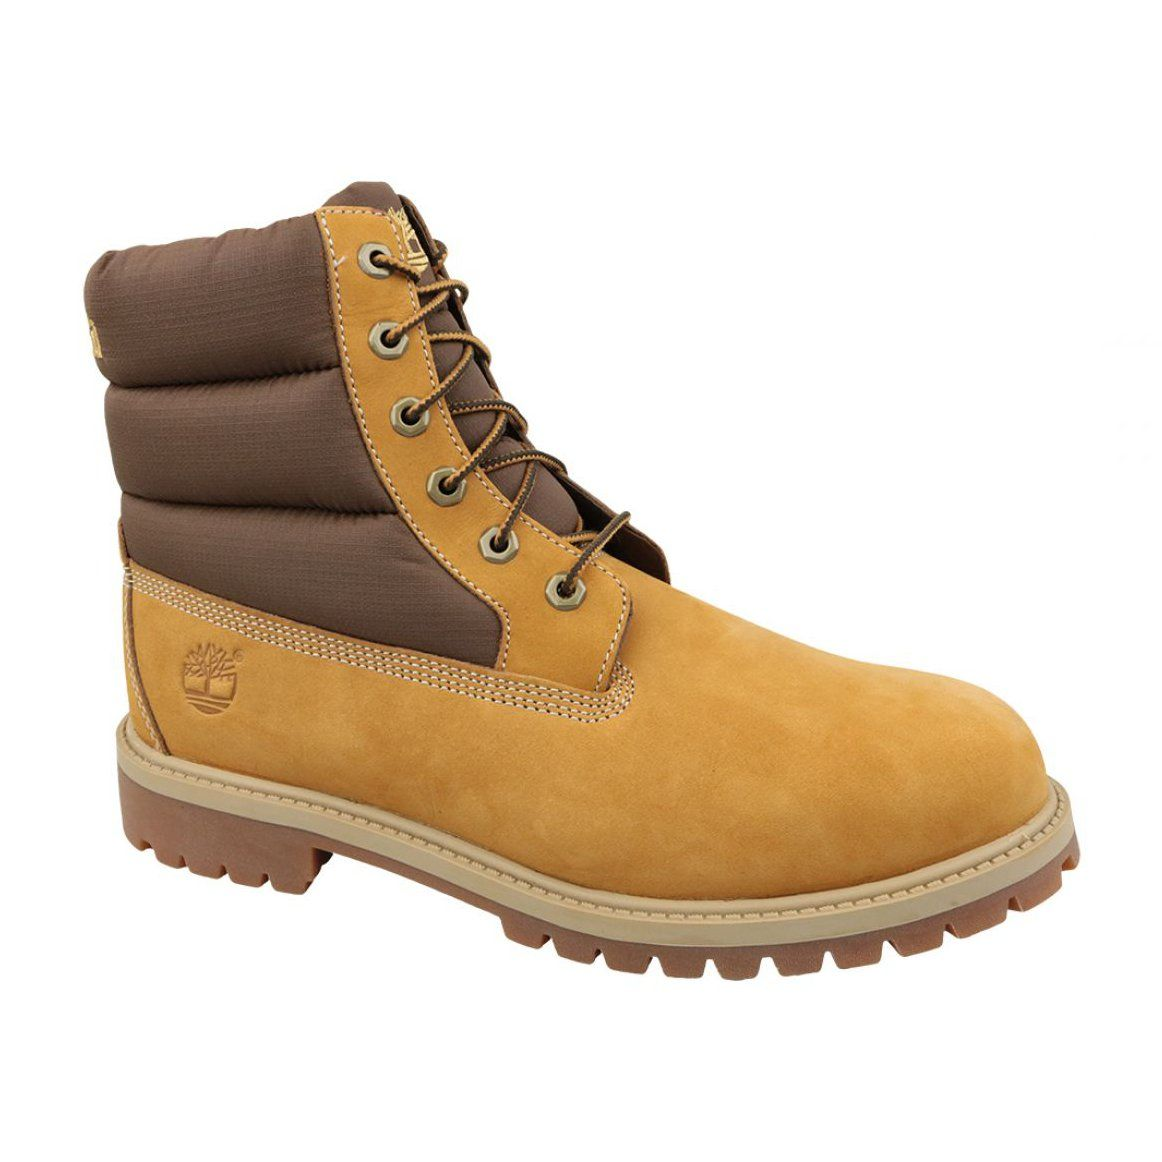 Children S Sports Shoes For Children Innamarka Timberland 6 In Quilit Boot Jr C1790r Winter Boots Brown Winter Boots Boots Brown Boots